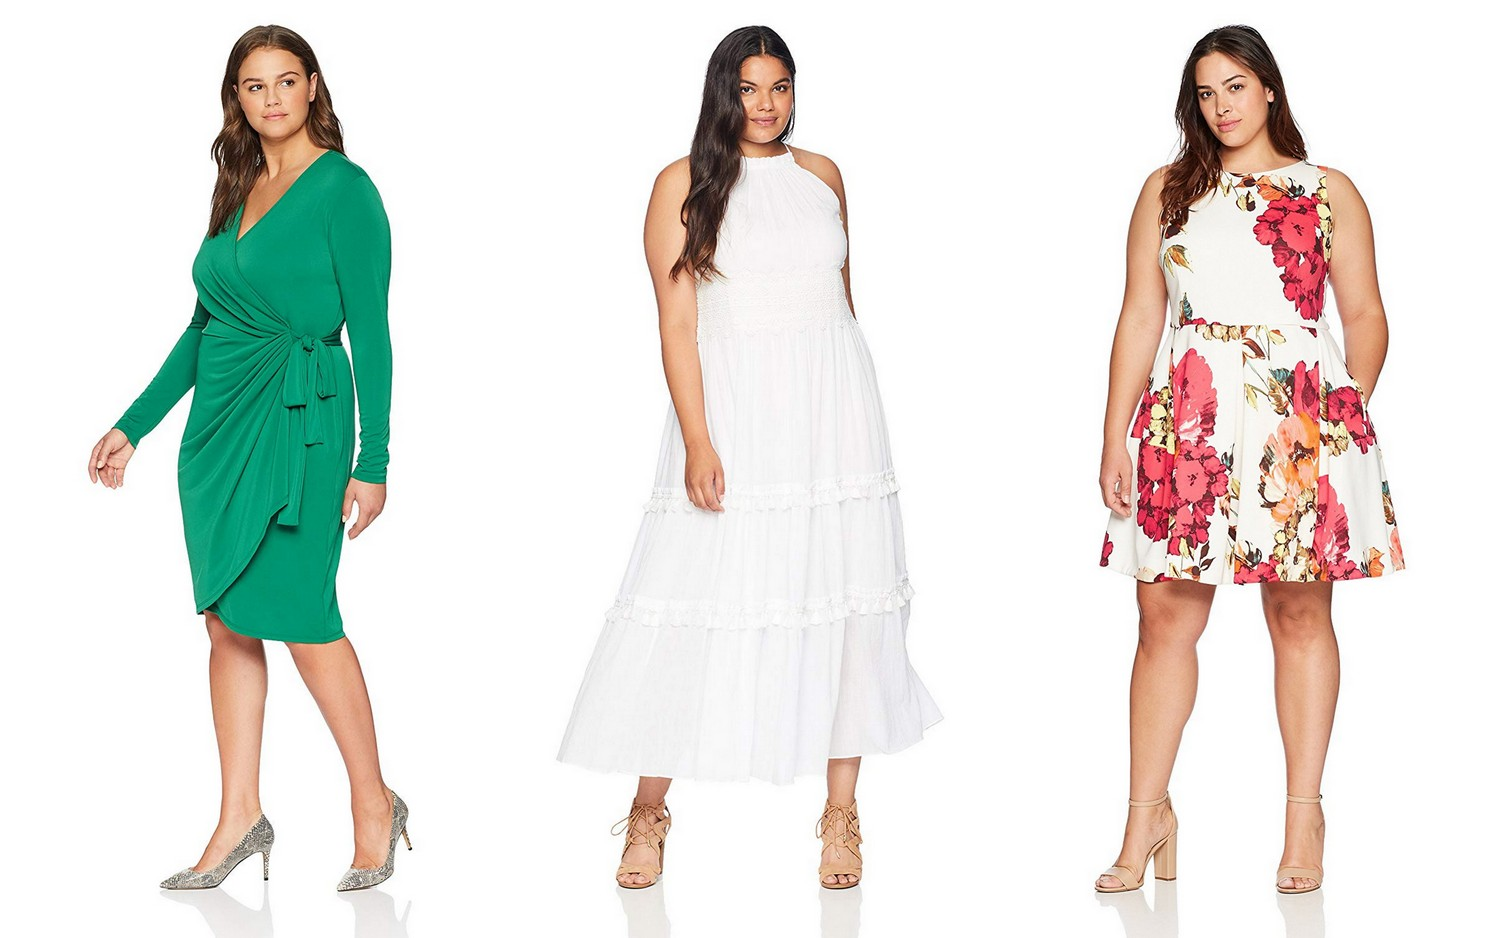 395b54ea6e0 11 Must Rock Plus Size Summer Dresses You Can Get at Amazon Prime Fashion